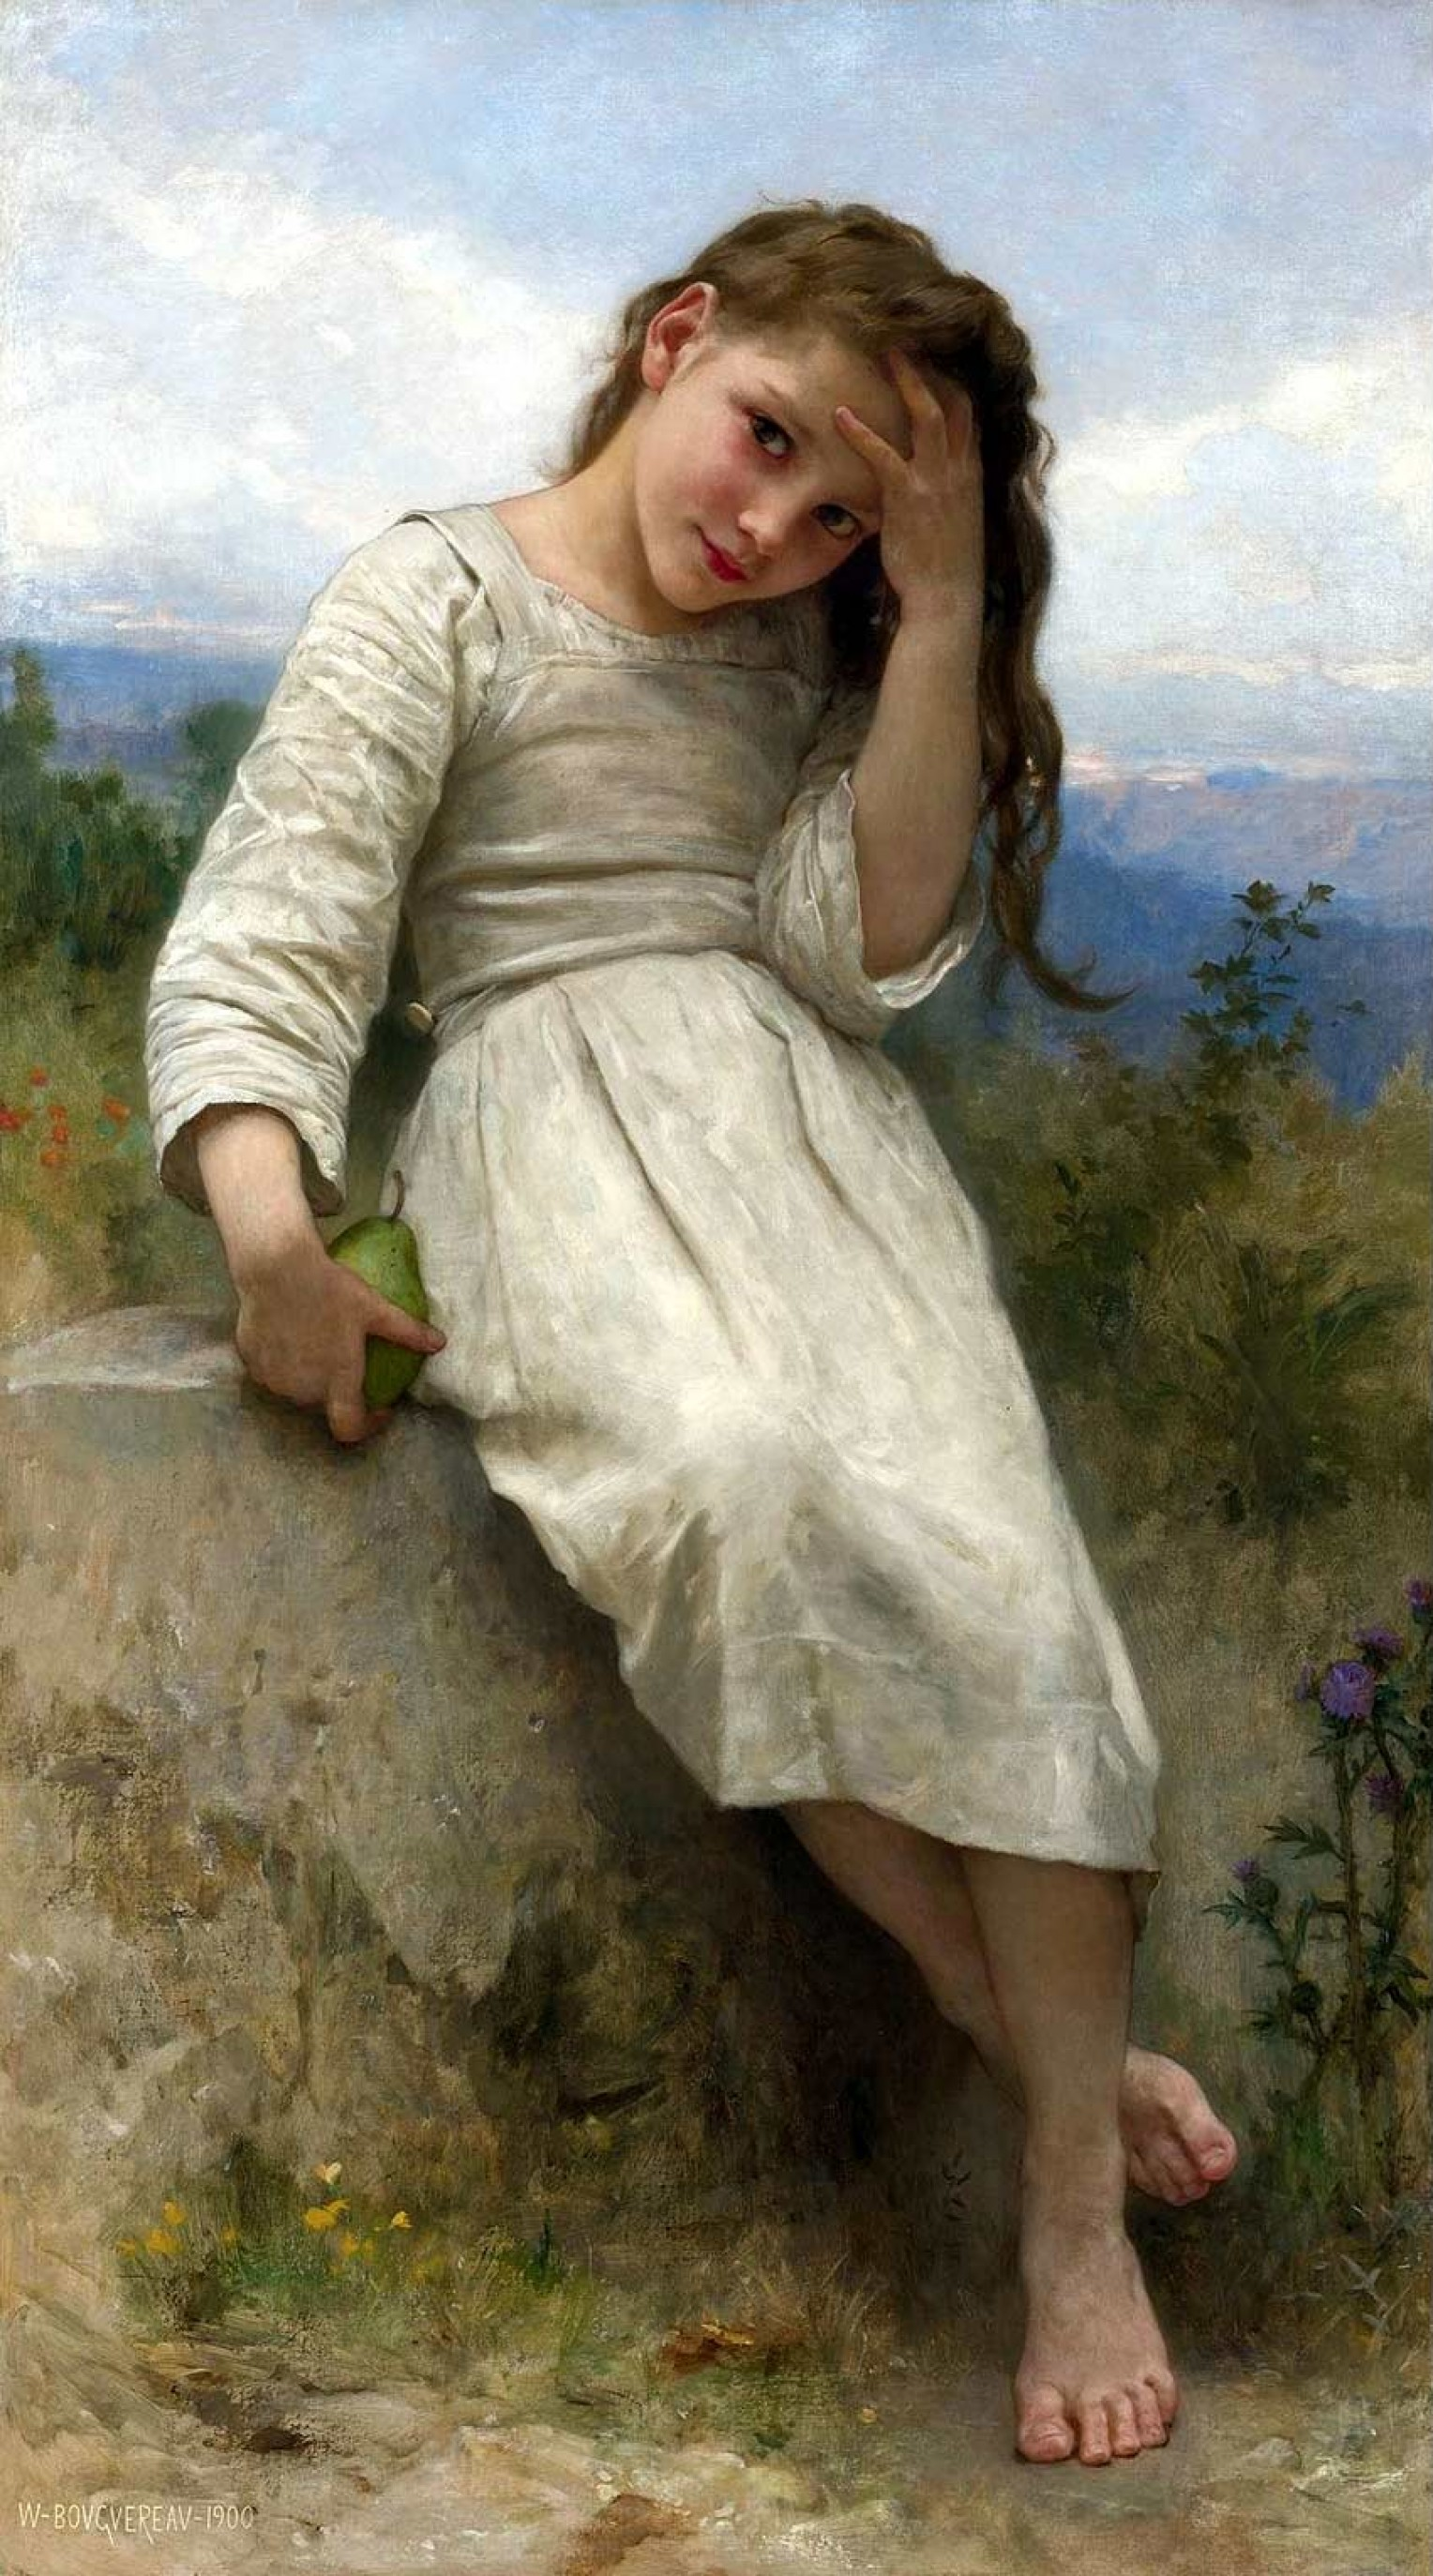 A painting of Bouguereau